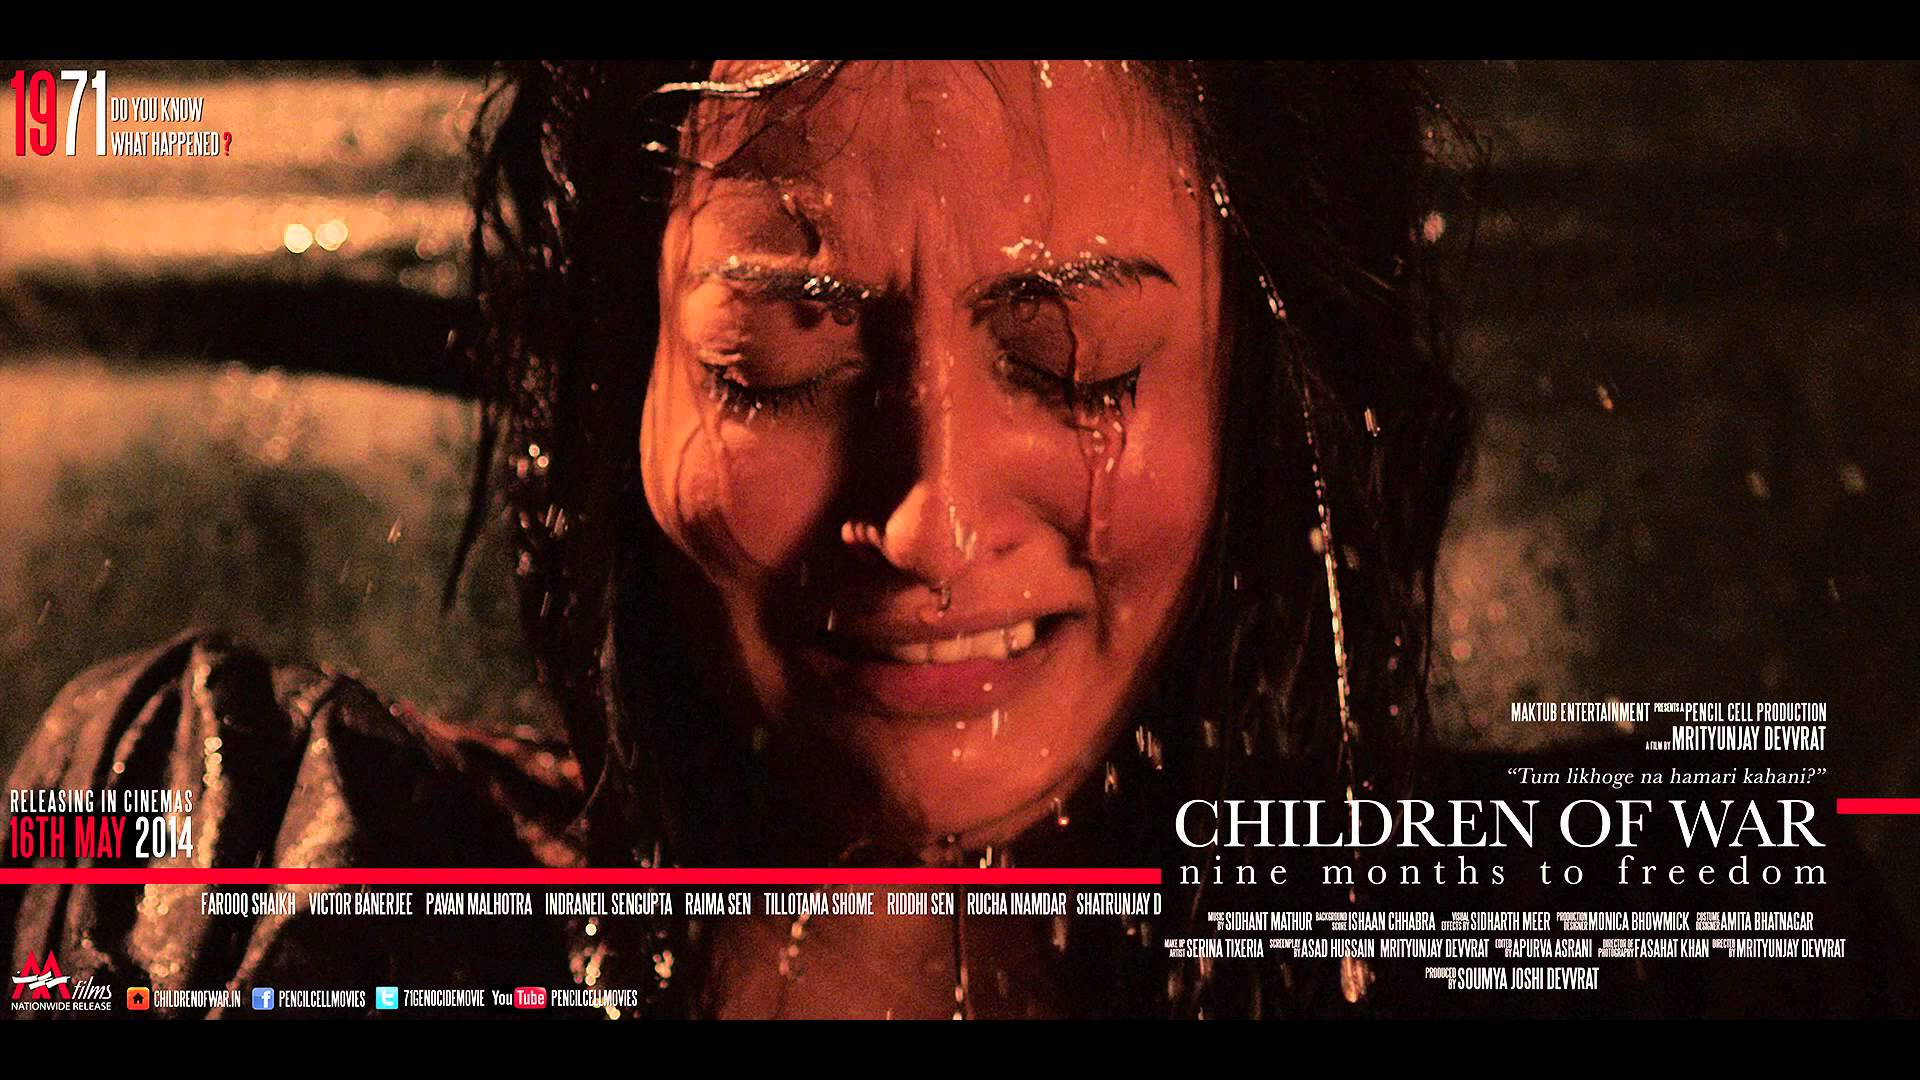 Children of War Image